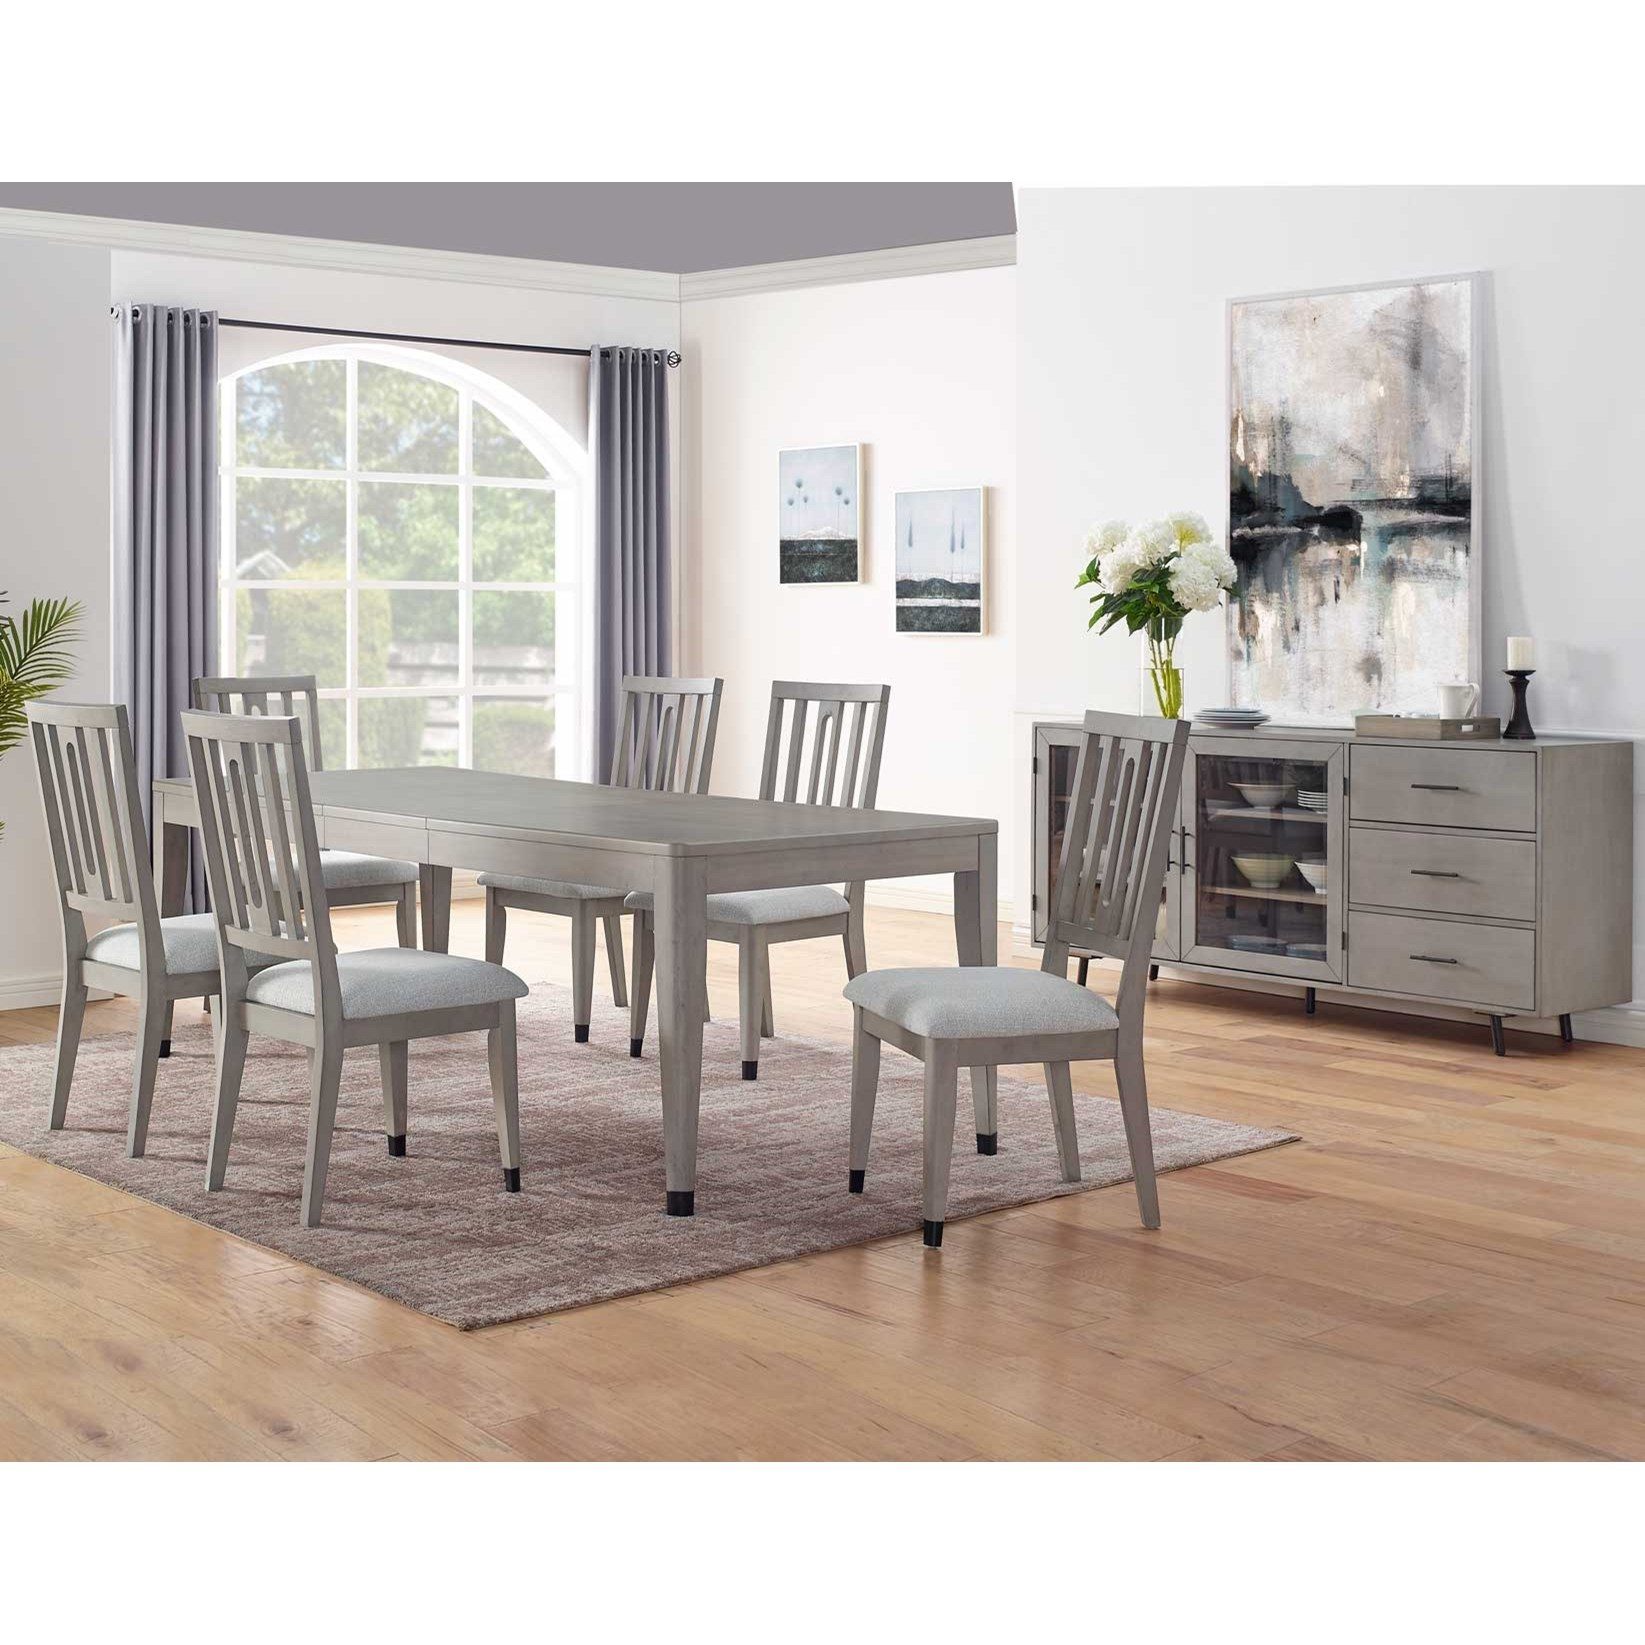 Fordham Dining Room Group by Star at EFO Furniture Outlet